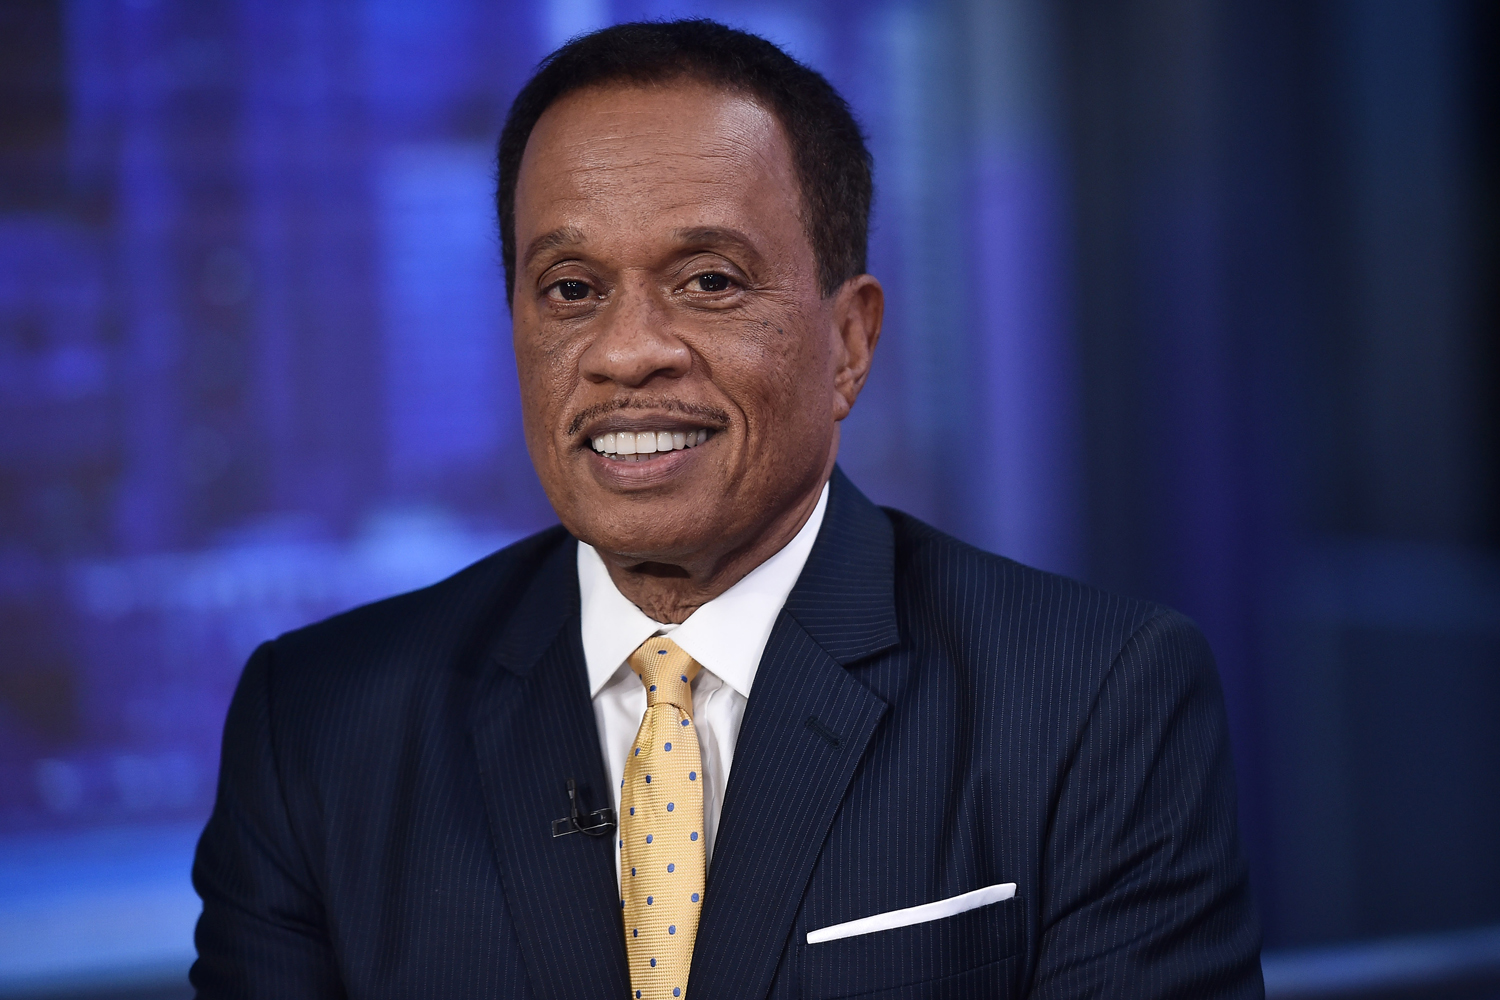 """On Dec. 3, The New York Timesreported that the 66-year-old co-host ofFox News'talk show,The Five, tested positive for the coronavirus and is isolating himself. Williams confirmed his diagnosis tothe Daily Beast.                             According to theTimes, Williams went on vacation last month and returned to the Fox News studio on Monday, where he was tested for COVID-19. Then, on Thursday, the journalist received a positive test result, the outlet reported, citing sources who """"requested anonymity to share private discussions.""""                             Speaking on his condition, Williams told the Daily Beast, """"I'm not great but I'm not dying or anything."""""""